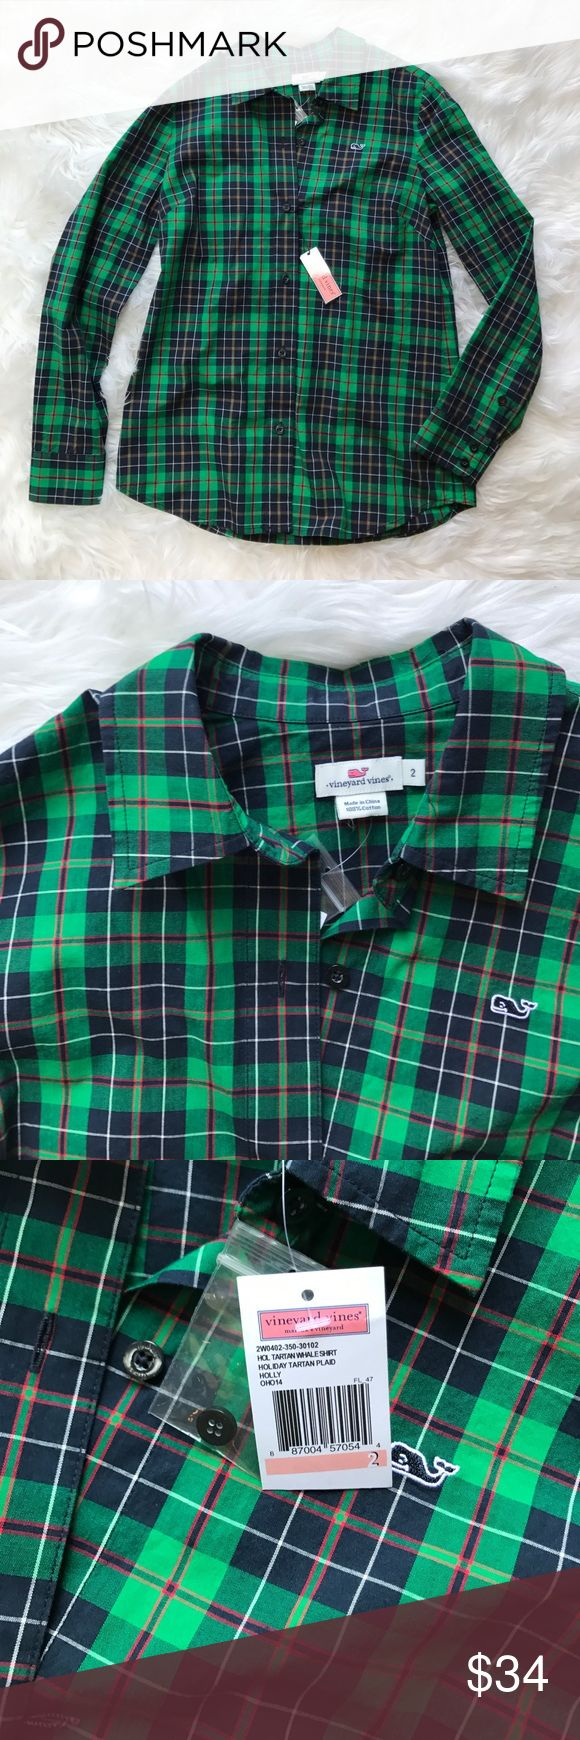 • Vineyard Vines • Green Plaid Whale Shirt Size 2 - Vineyard Vines - Plaid Shirt - Size 2 - New with Tags Vineyard Vines Tops Button Down Shirts